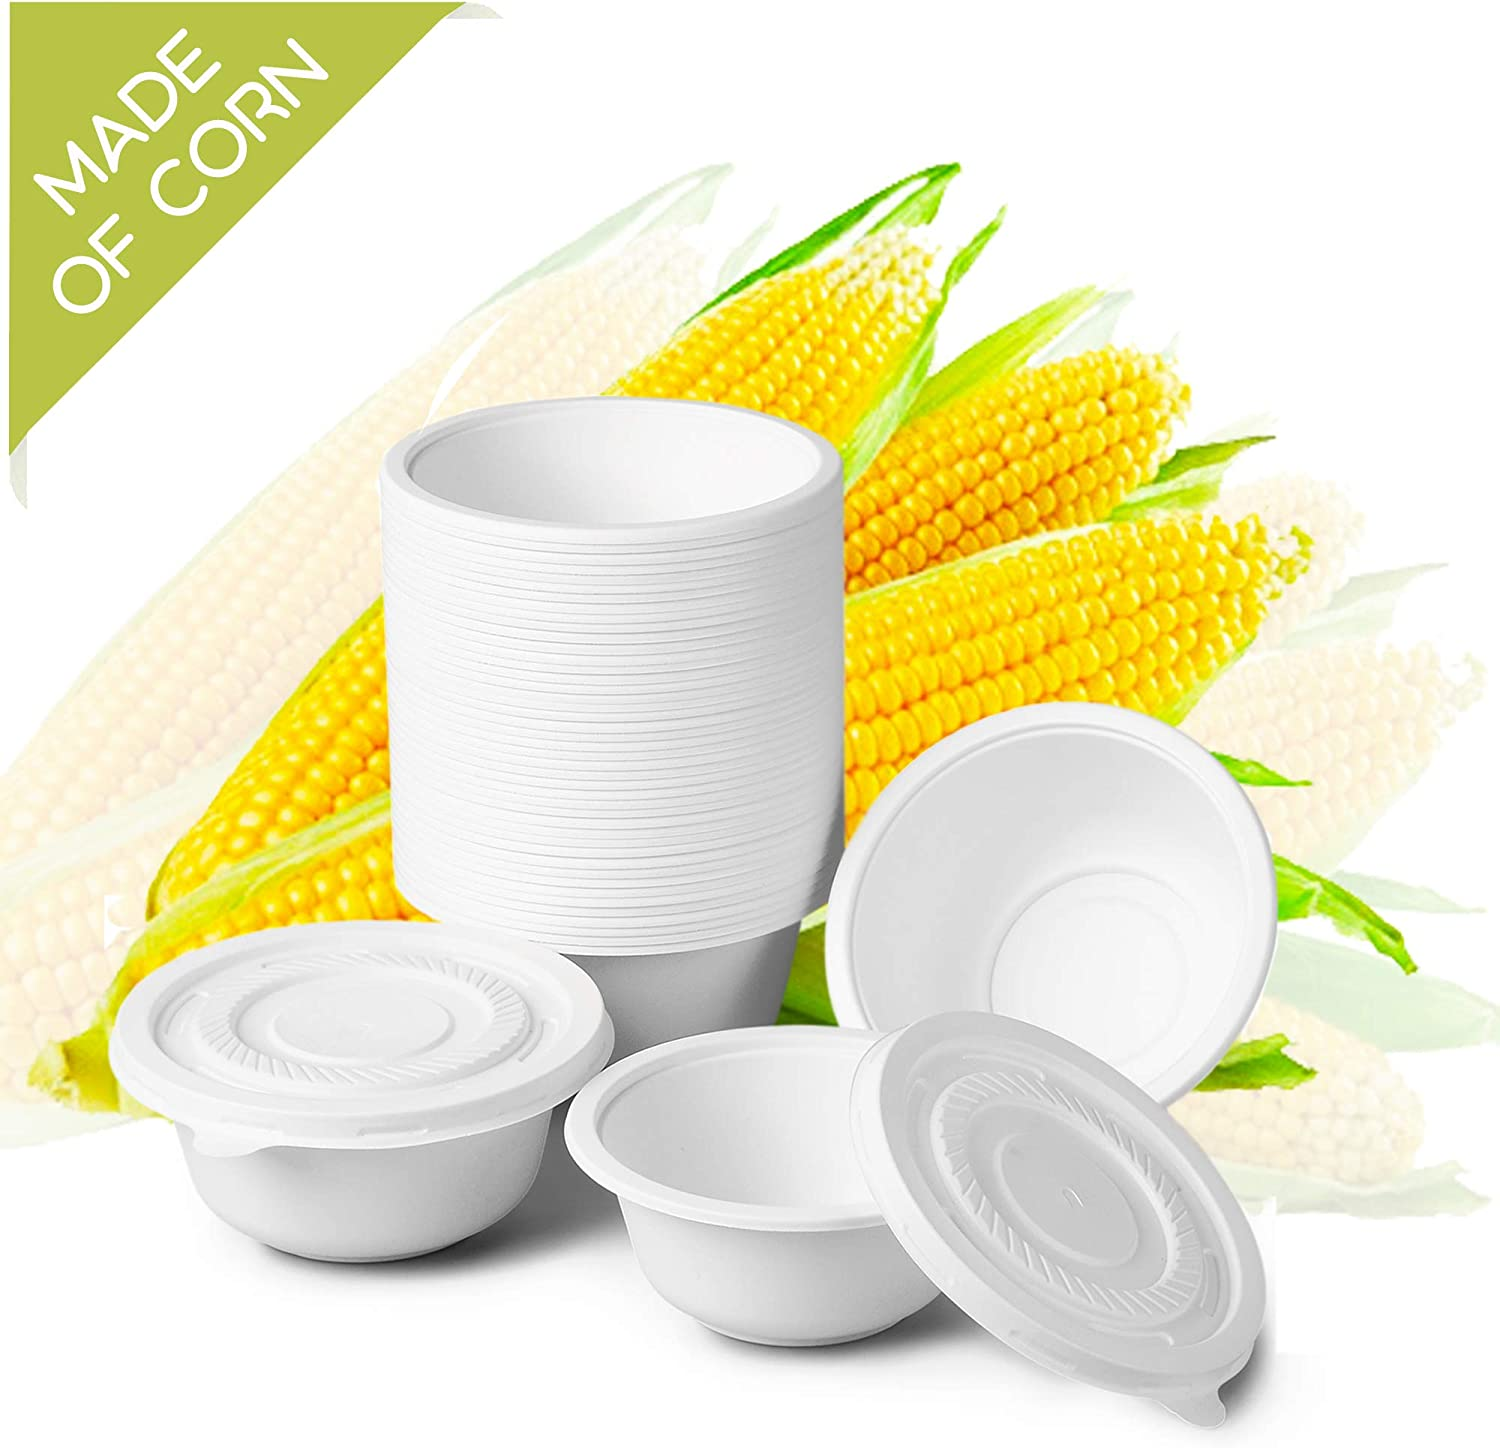 Eco-Friendly Disposable Bowls with Lids – 100 Compostable Recyclable Food Storage Containers Made of Biodegradable Cornstarch - for Party, Restaurant Carry-Out and Meal Prep (10 oz)